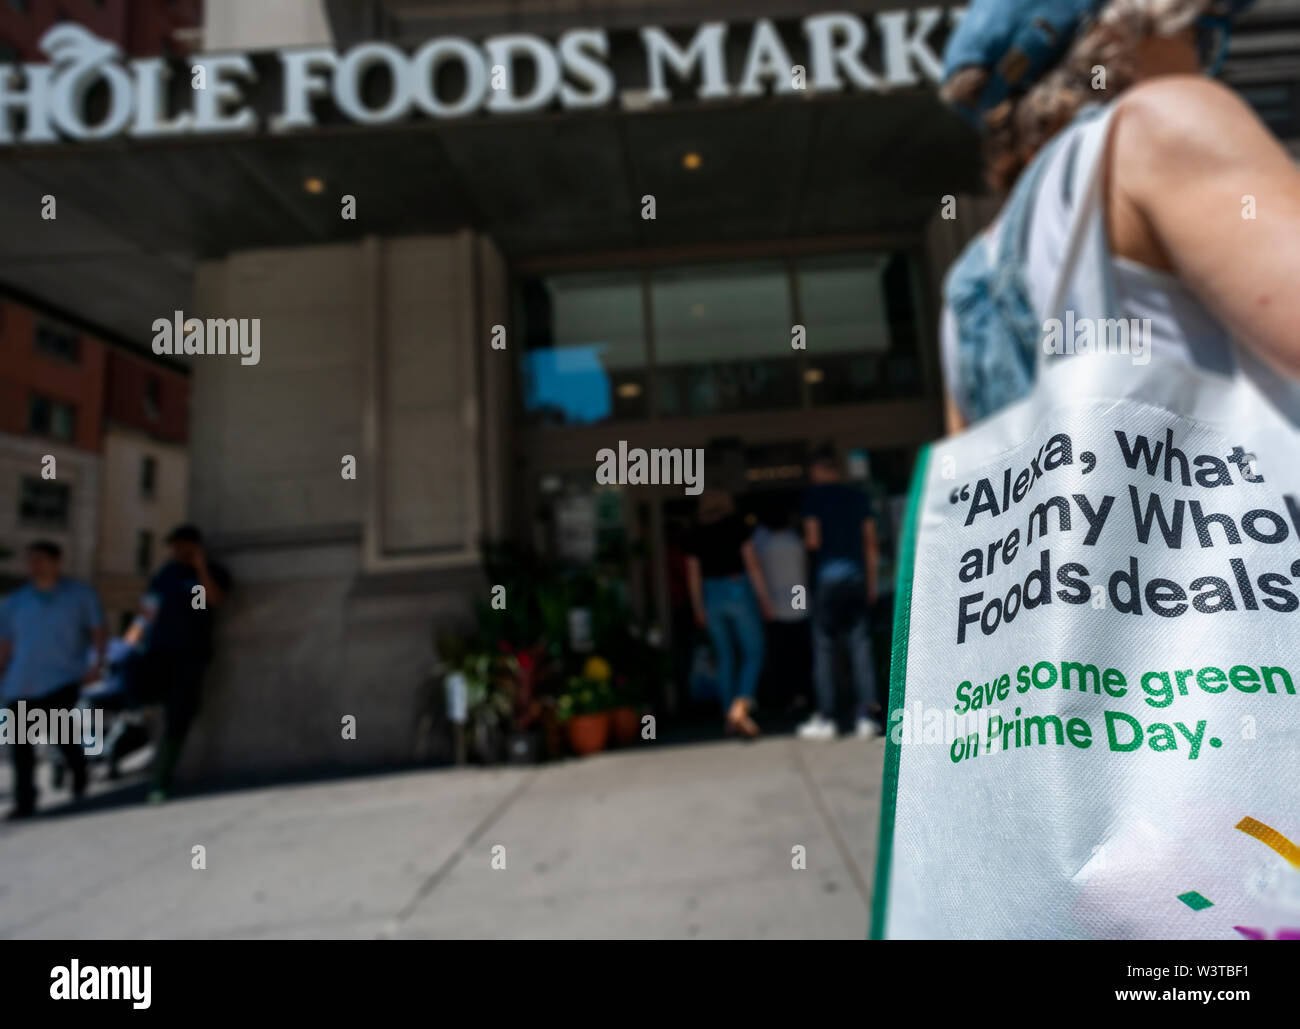 Whole Foods Bag Stock Photos & Whole Foods Bag Stock Images - Alamy